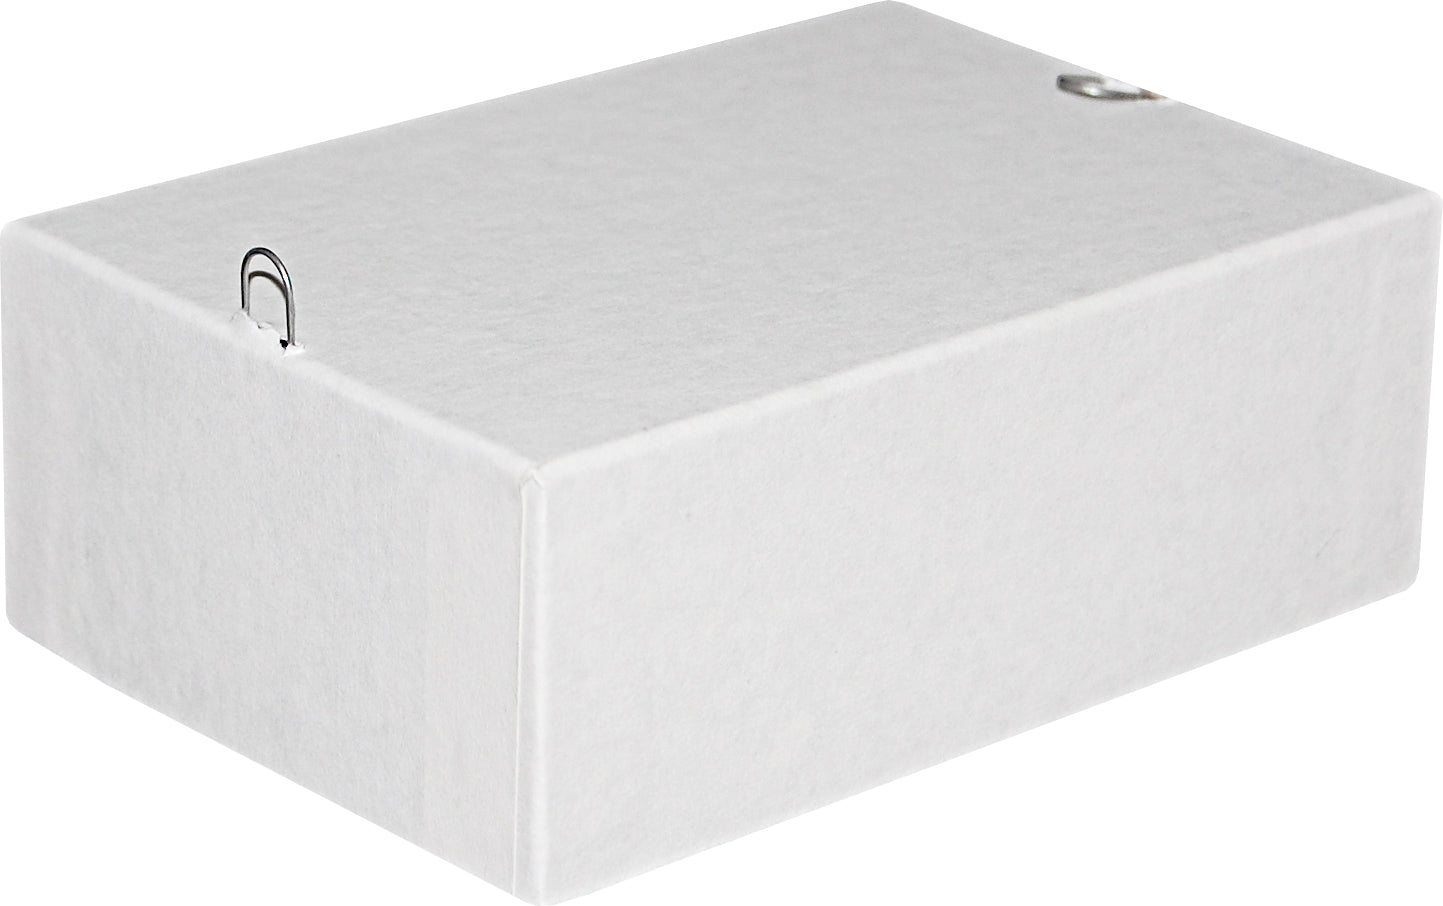 "White Repair/Mailing Box - P3 - 4 5/8"" x 3-1/8"" x 1-3/4"""